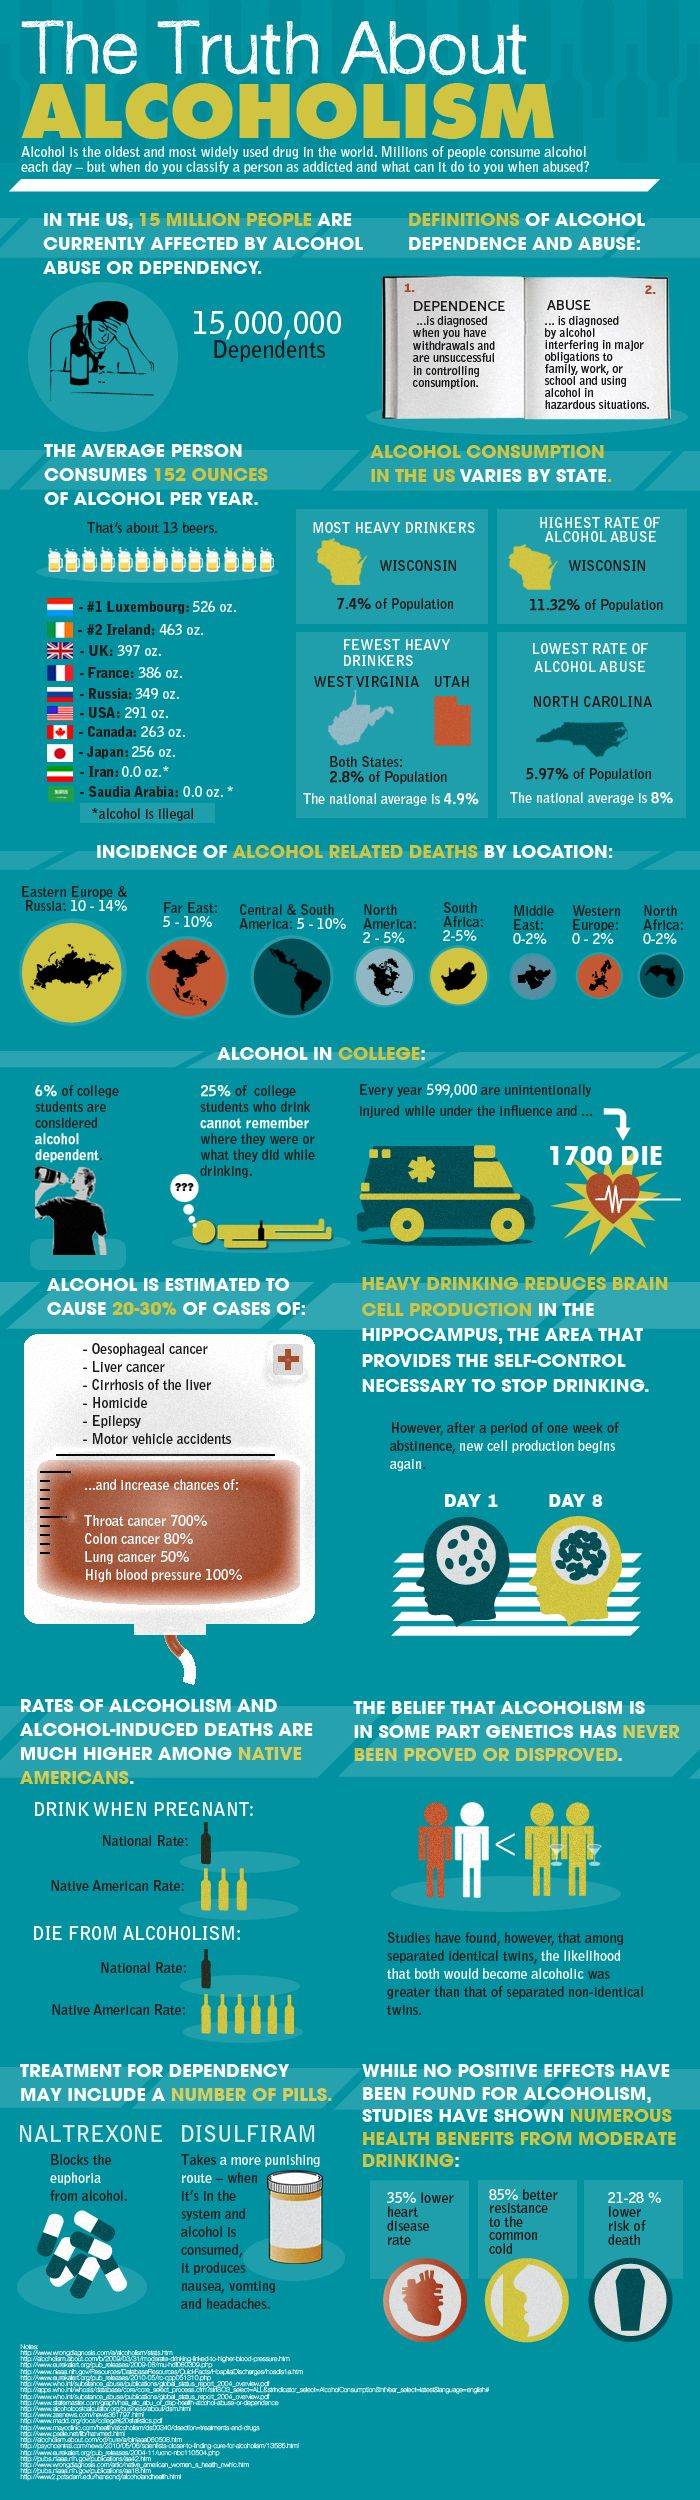 114 best images about Drug & Alcohol Education & Recovery ...